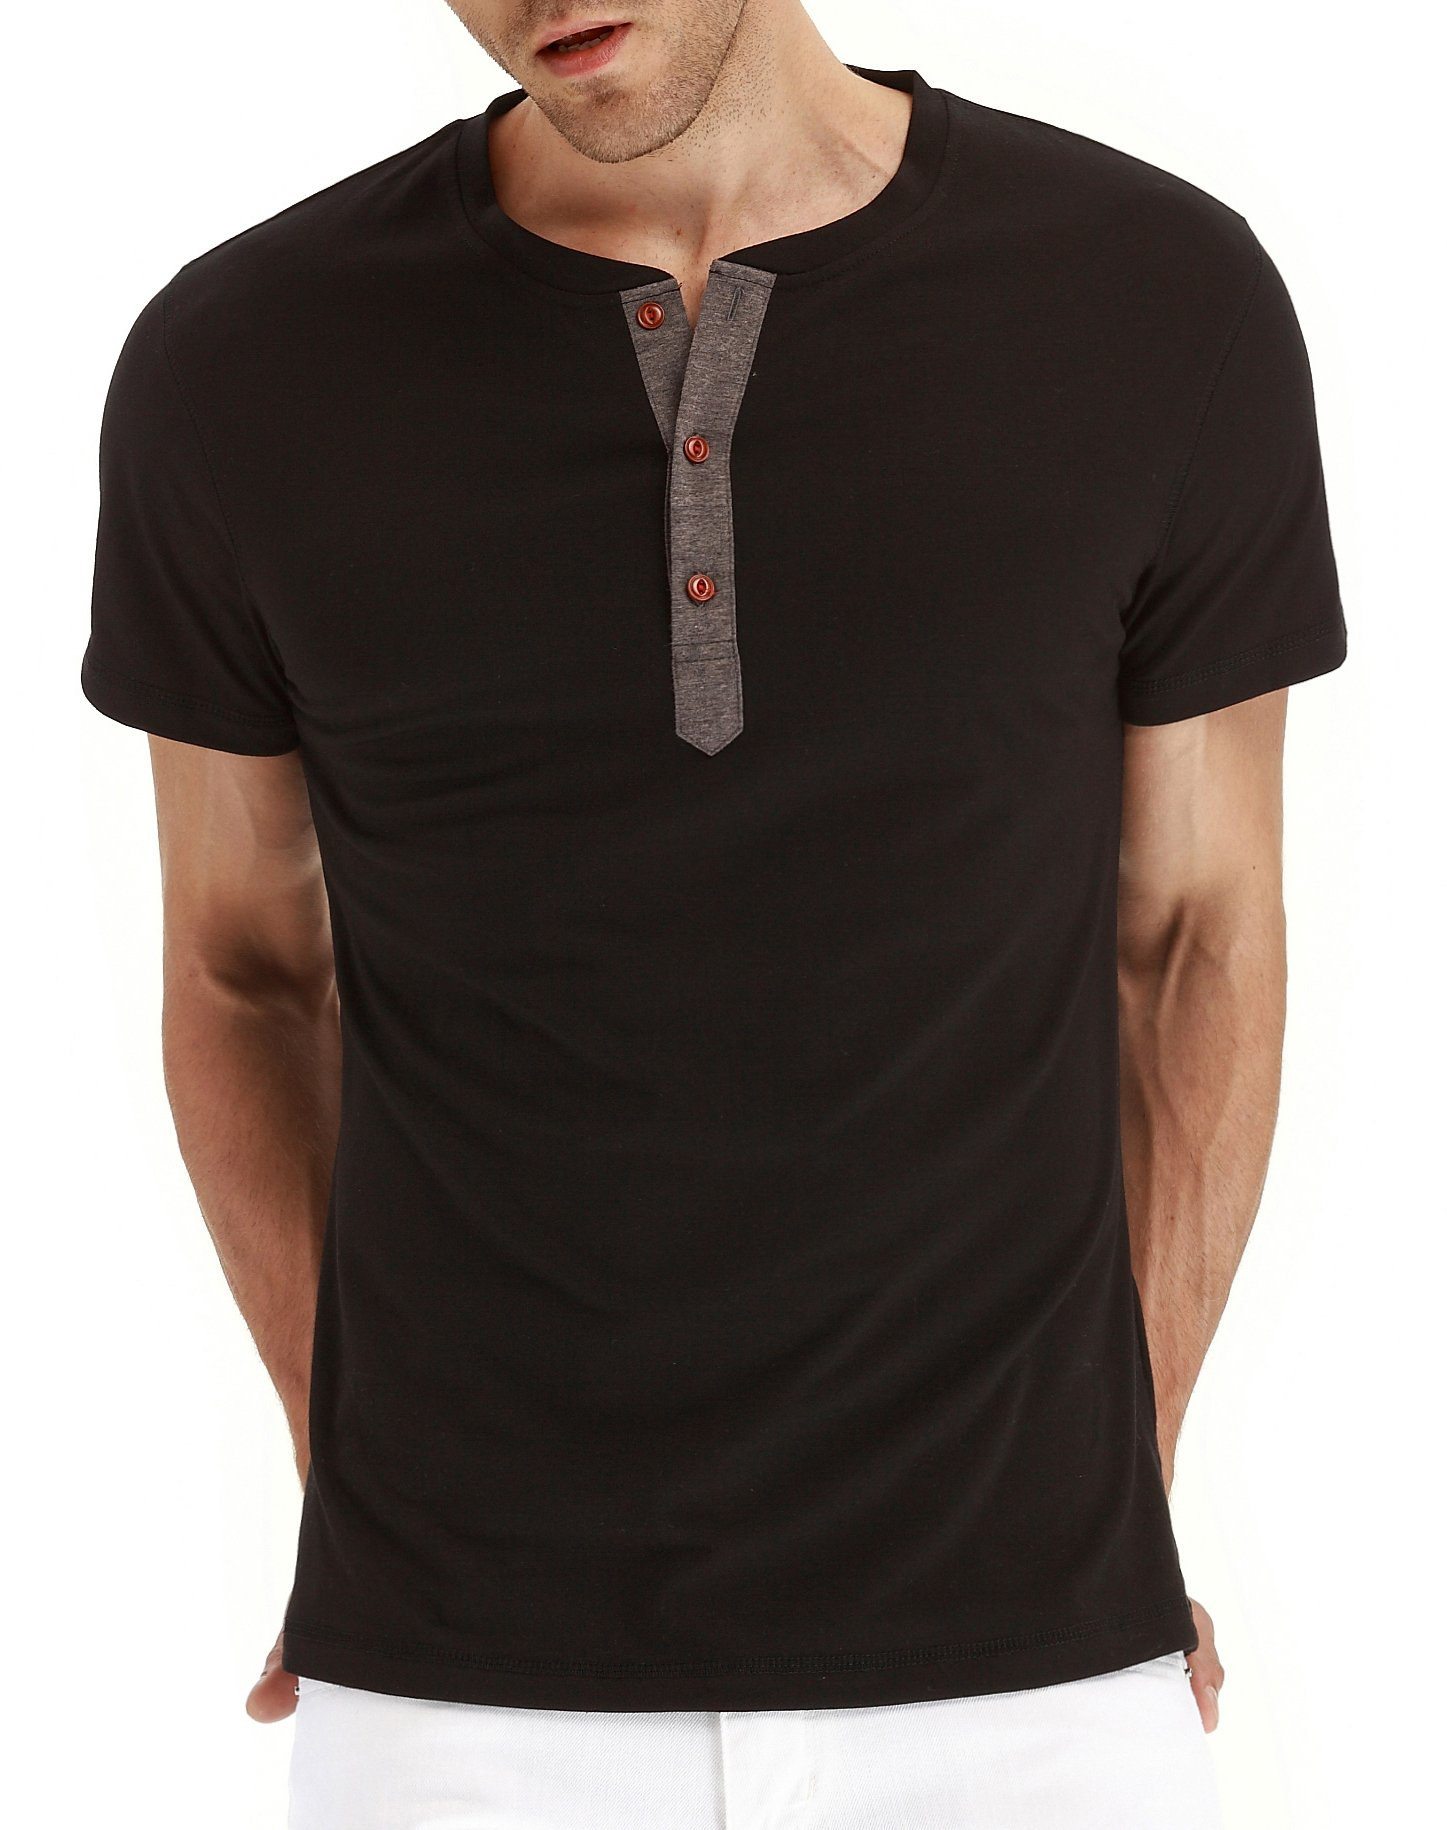 Mr.Zhang Men's Casual Slim Fit Short Sleeve Henley T-shirts Cotton Shirts Black-US M by Mr.Zhang